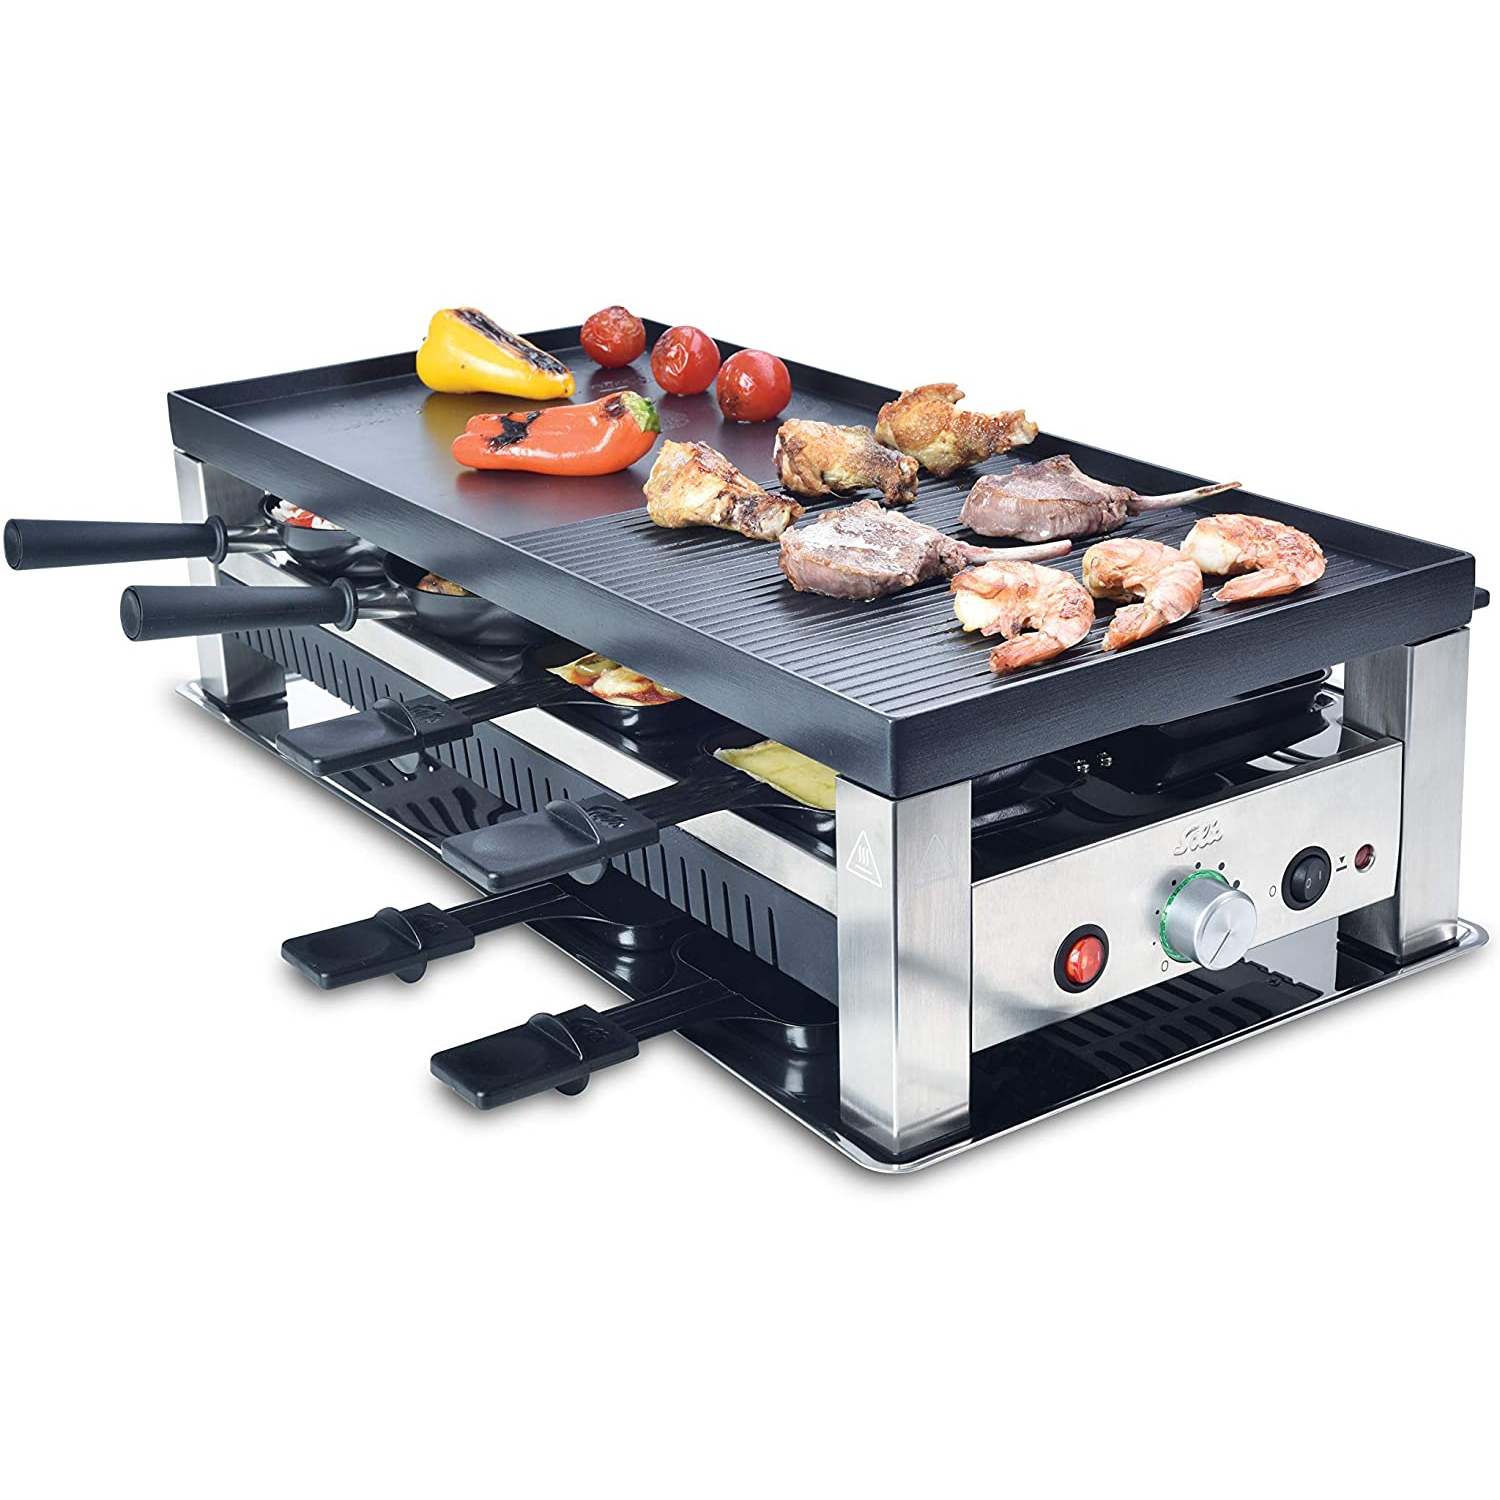 SOLIS 750 Table Grill 5 in 1 MULTIFUNKTIONS-GRILL 977.47